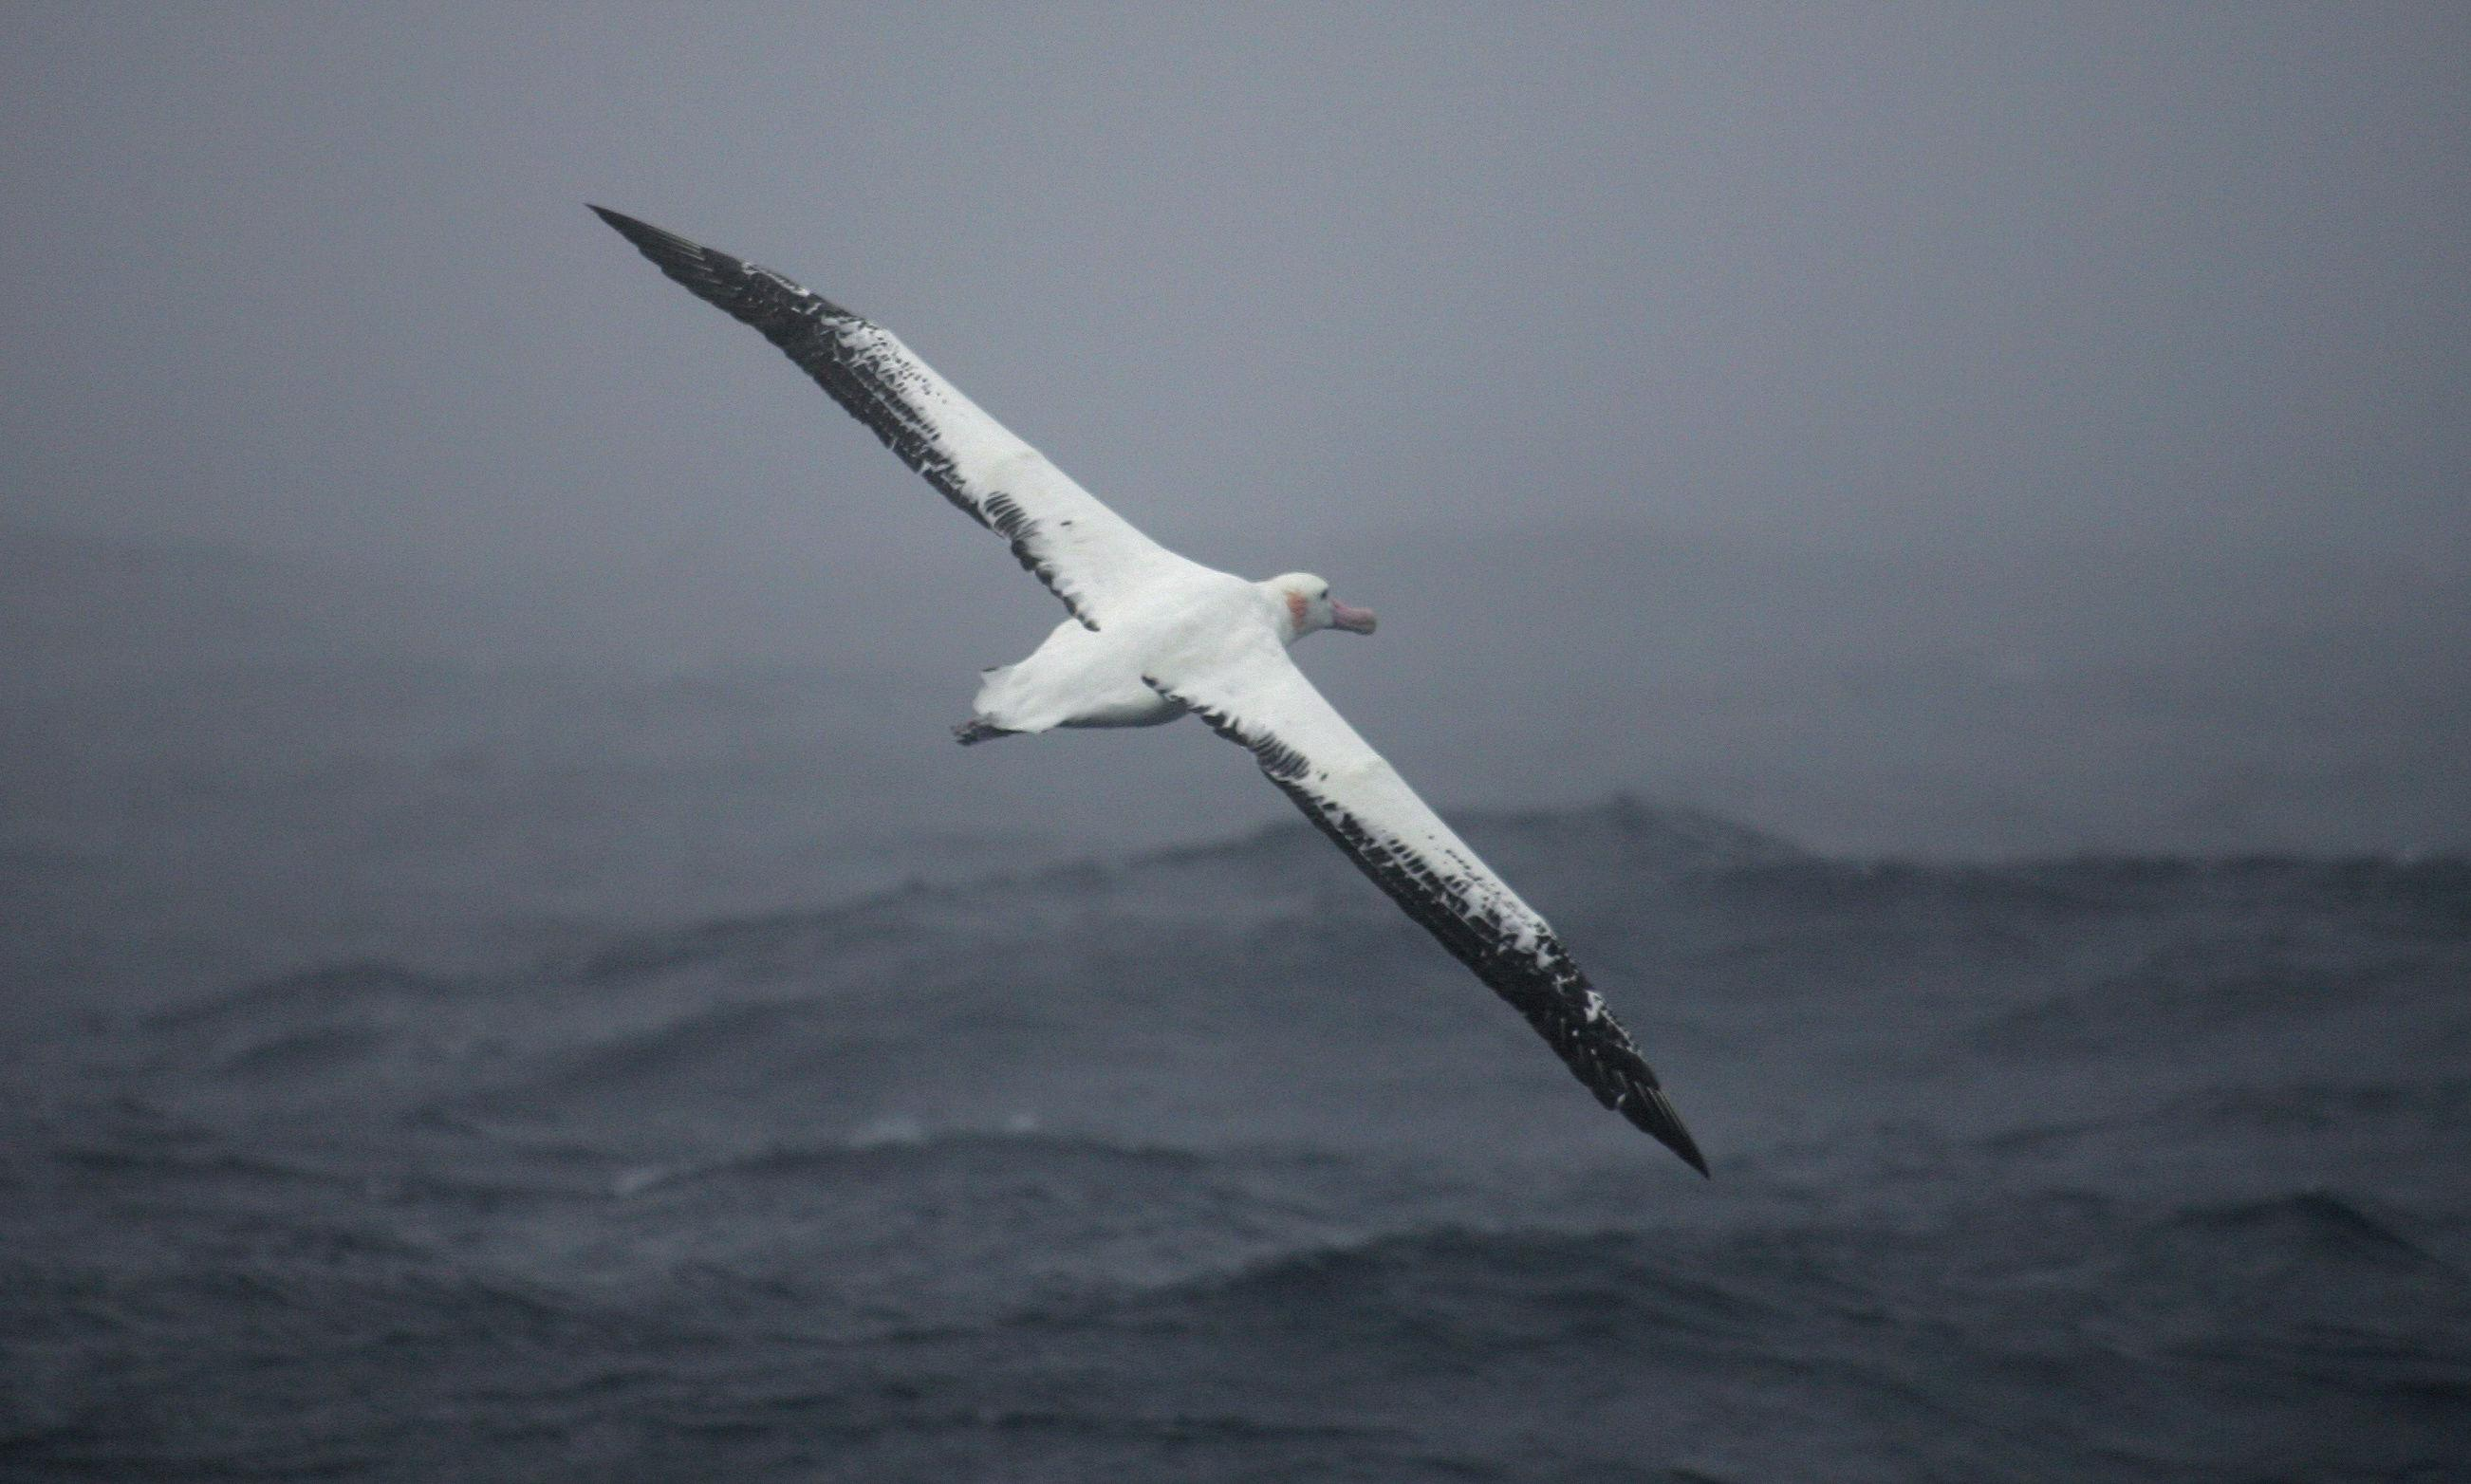 'Intelligent drones': albatross fitted with radar detectors to spot illegal fishing